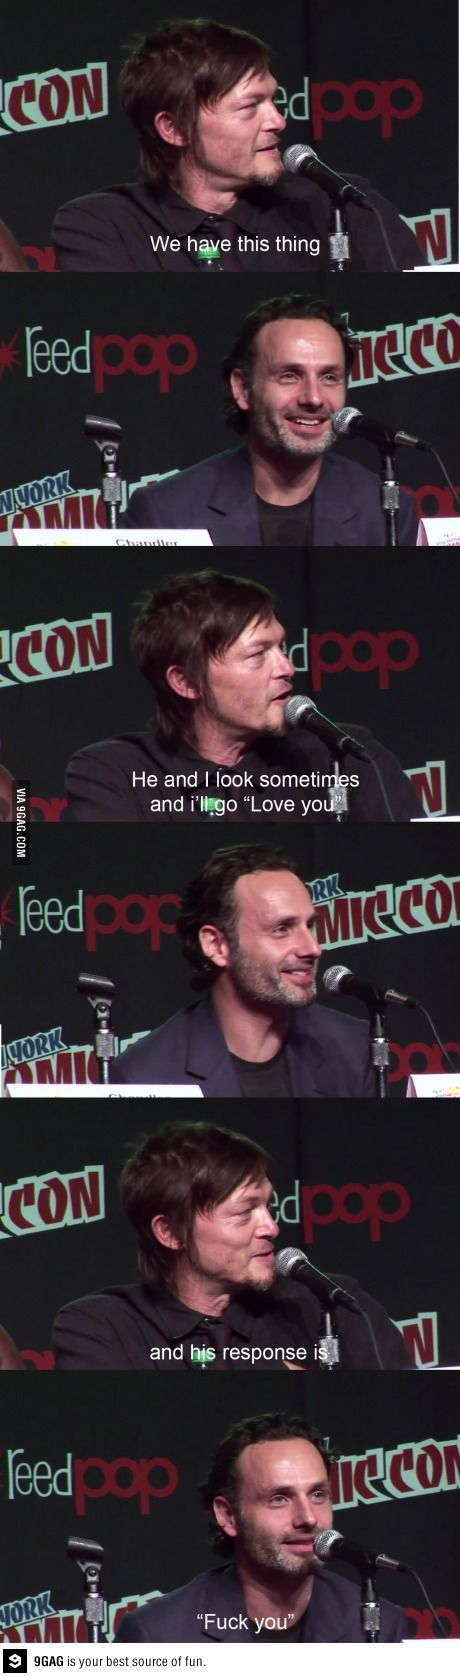 "Rick and Daryl the walking dead ""i love you"" ""fuck you"". Molly, kinda like when ""you're an asshole"" means ""I love you""?! Lol"